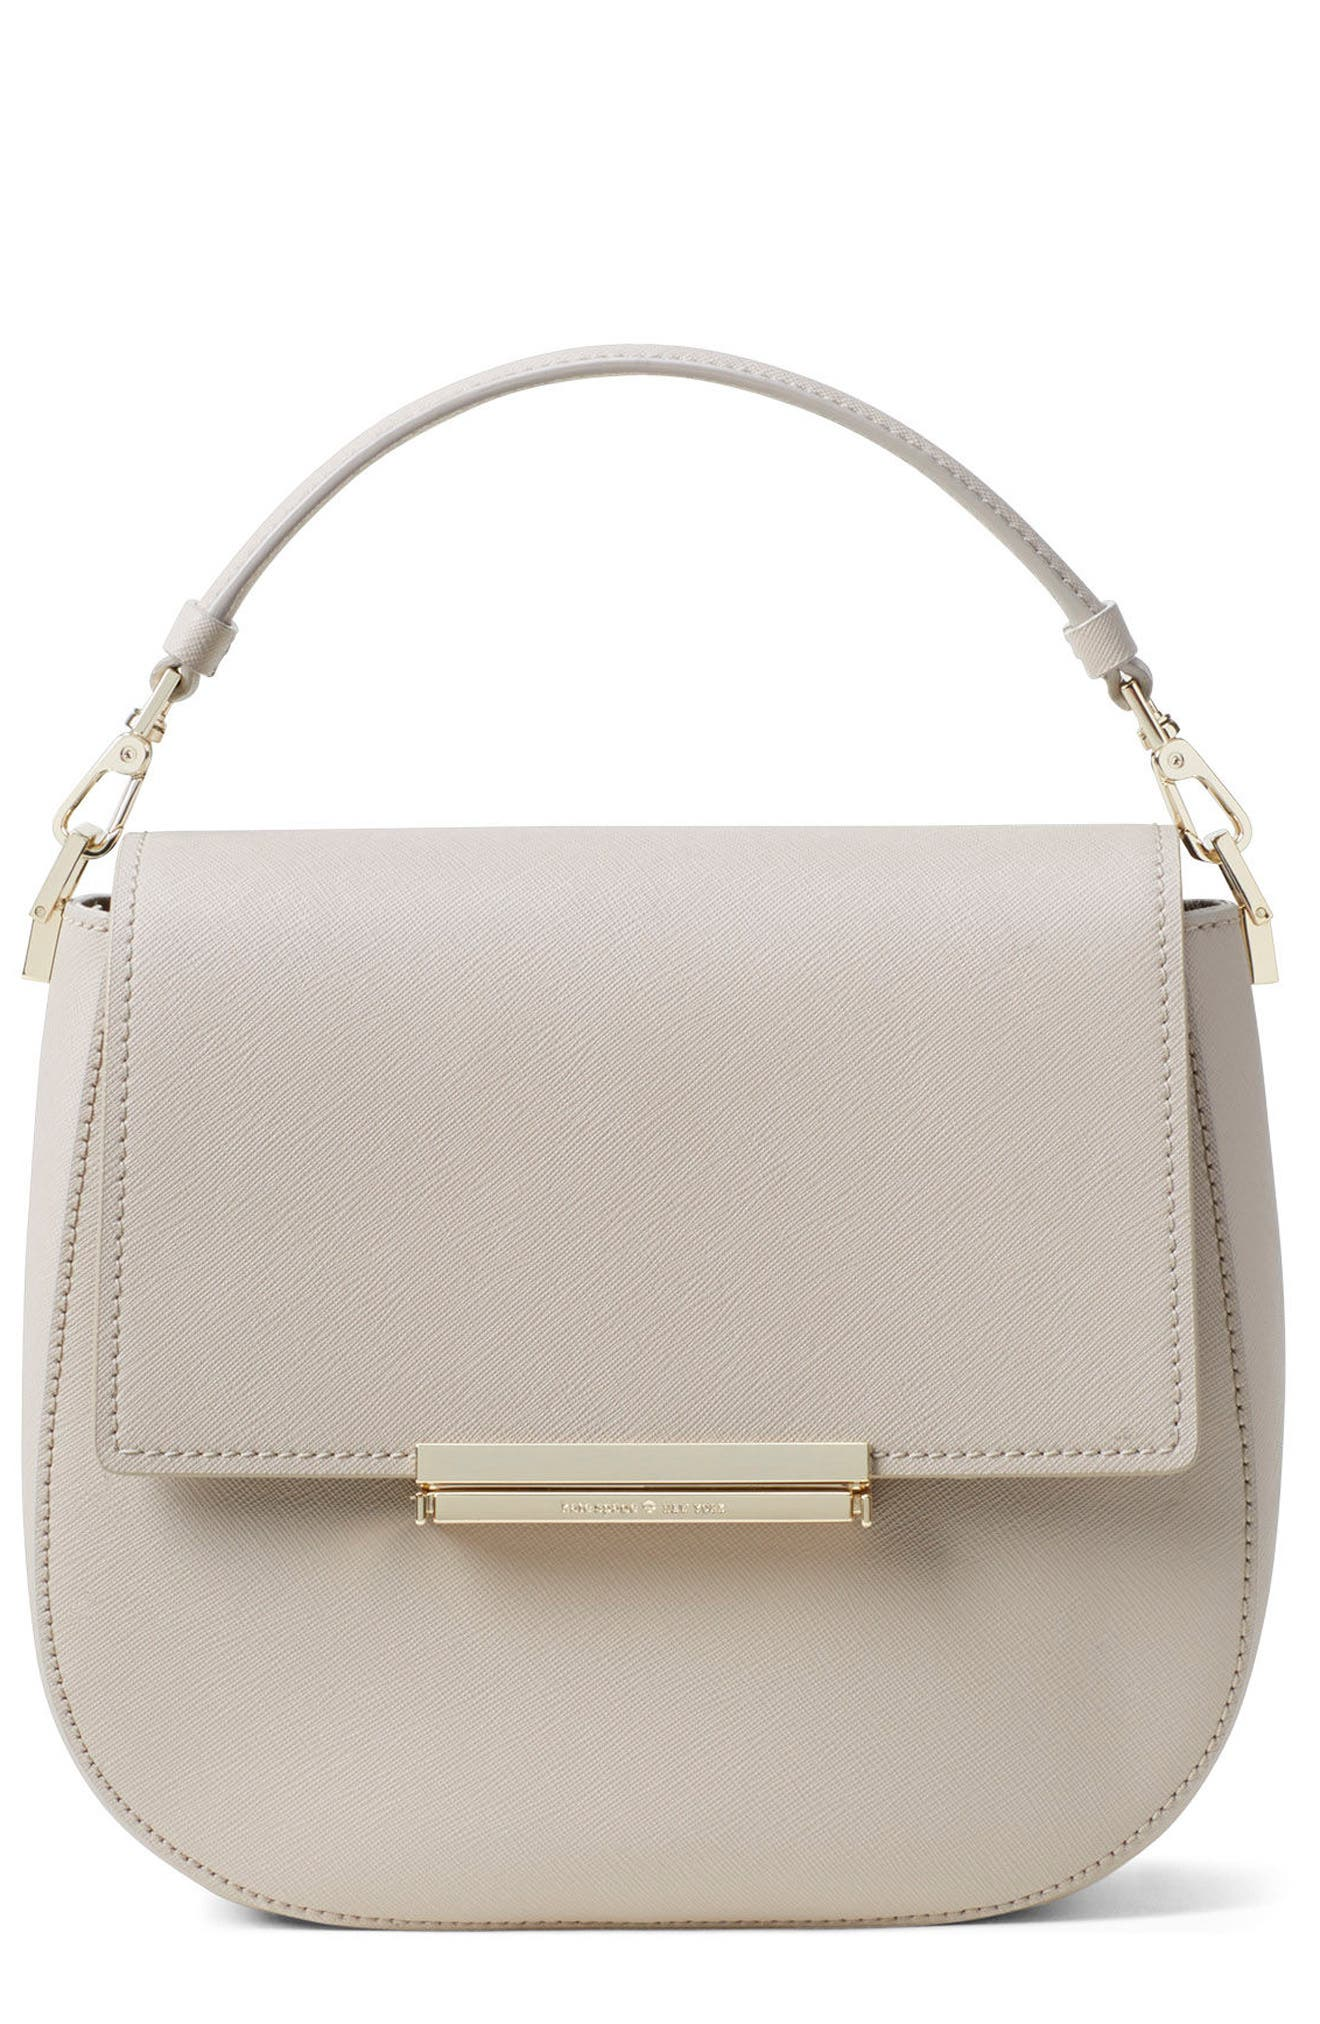 Main Image - kate spade new york make it mine - byrdie leather saddle bag